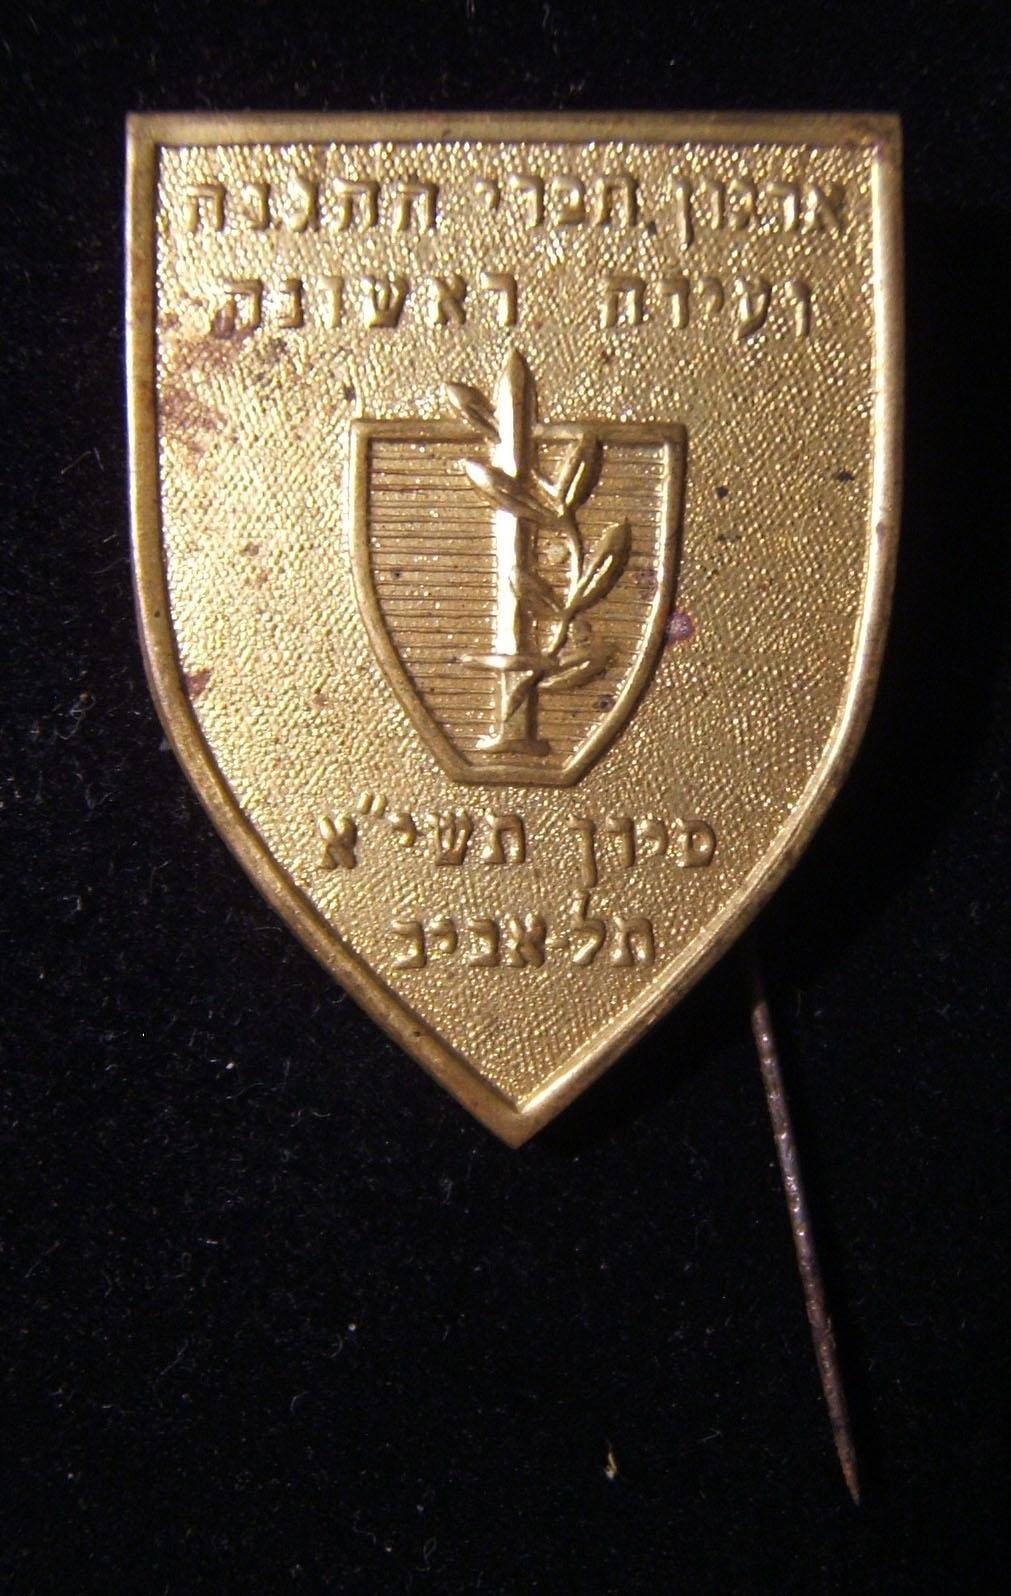 Israel: pin of the 1st Conference of the organization of [former] members of the Hagana, held in Tel Aviv, month of Sivan [June], 1951; weight: 6.3g.